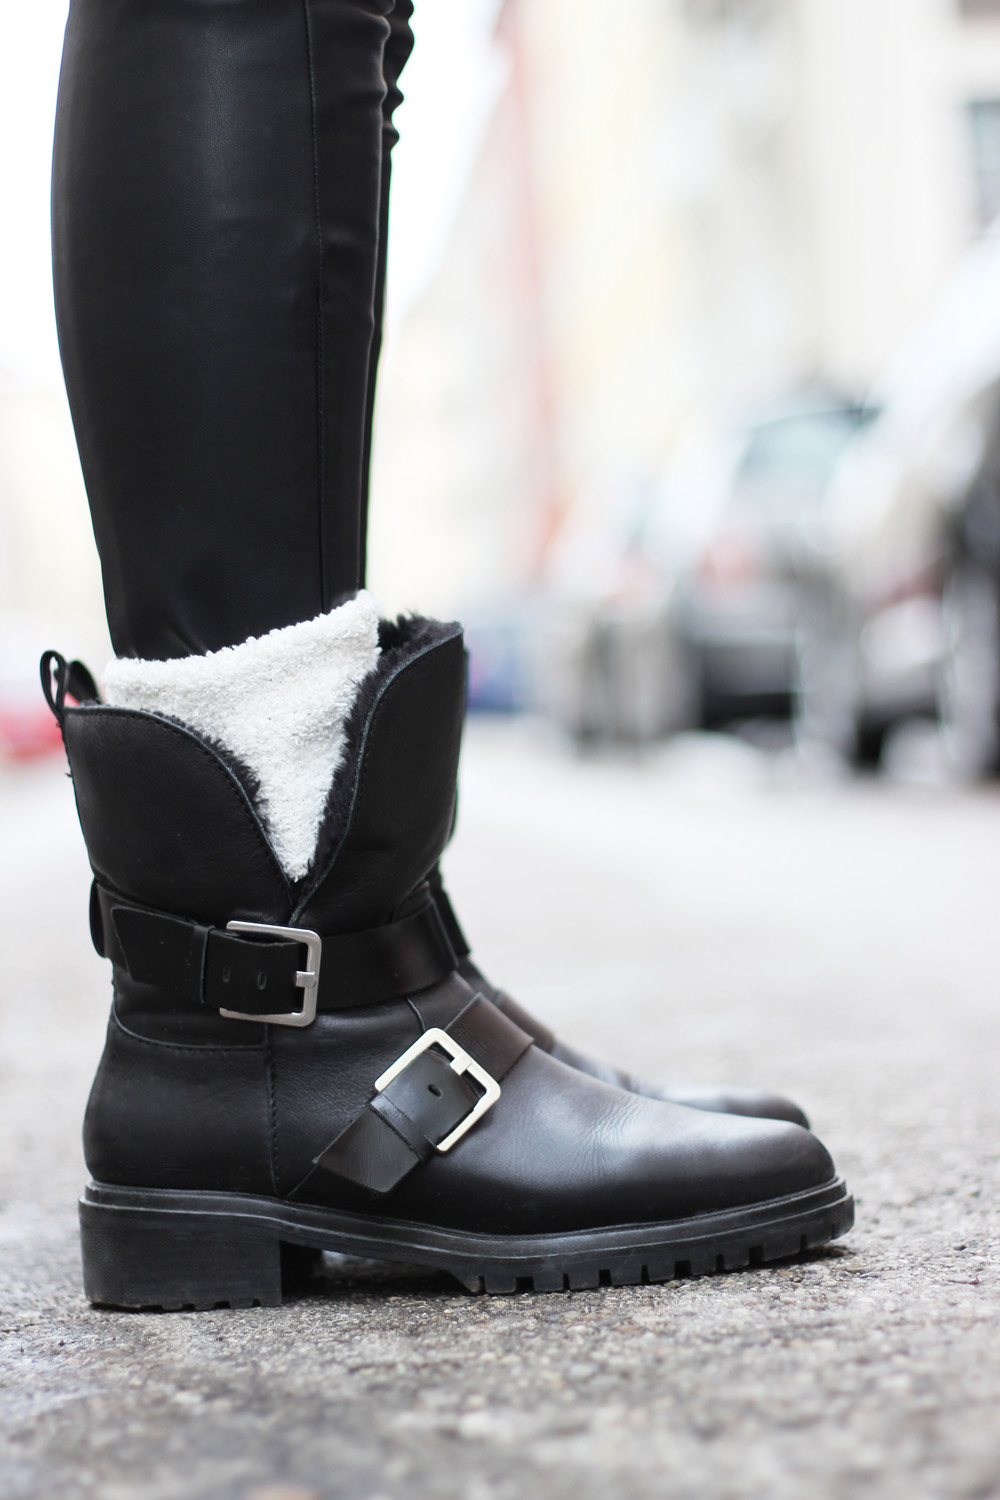 fatimayarie-black-bikerboots-zara-leatherpants-whitecosysocks-img_6005